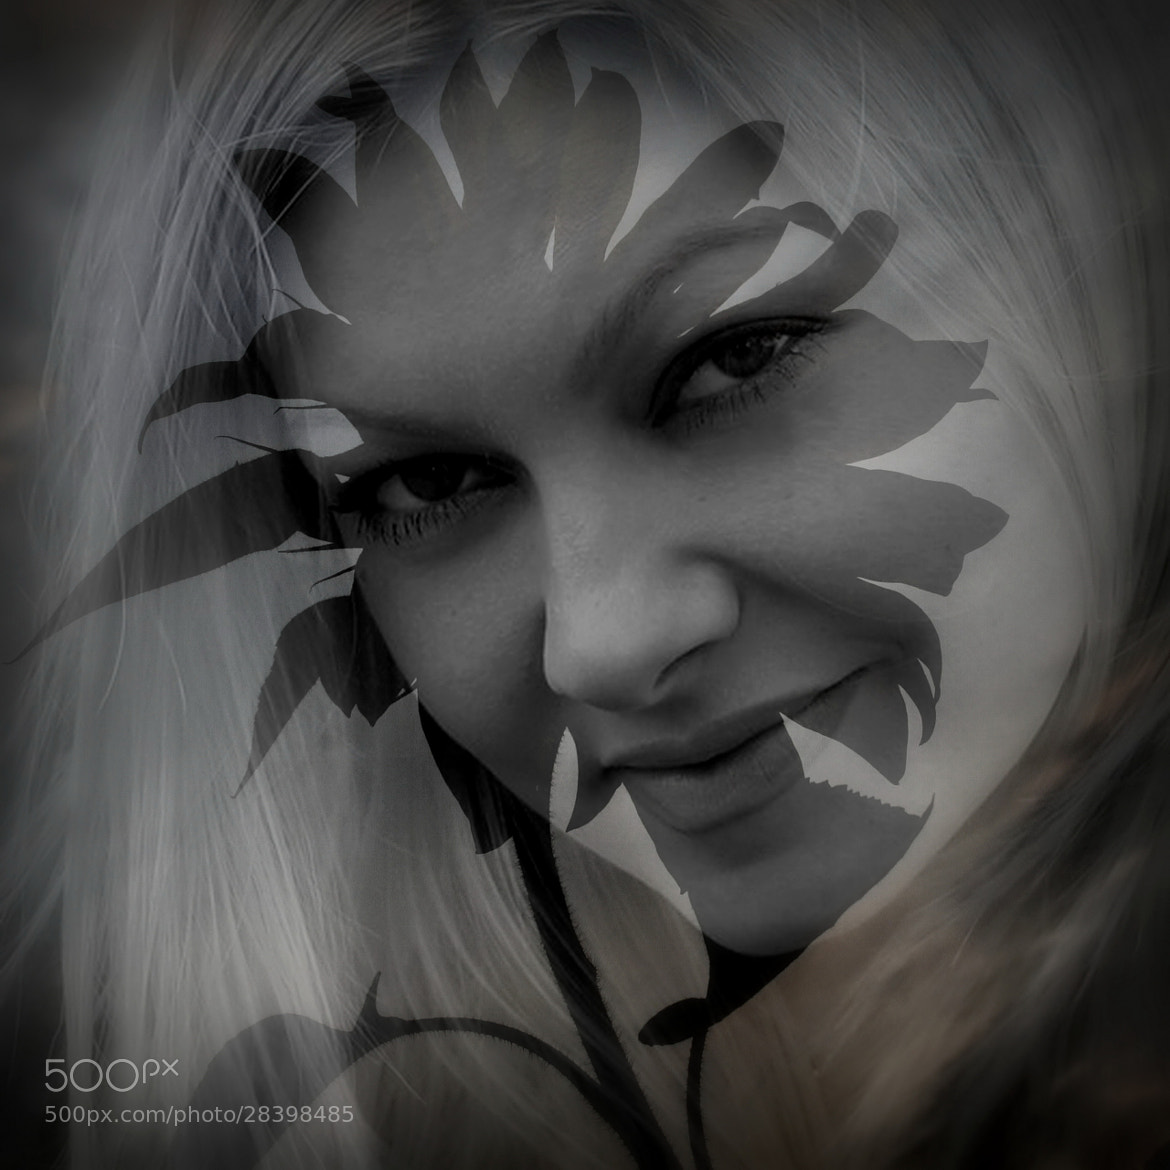 Photograph Abstraportrait by Natasha Goryaeva on 500px